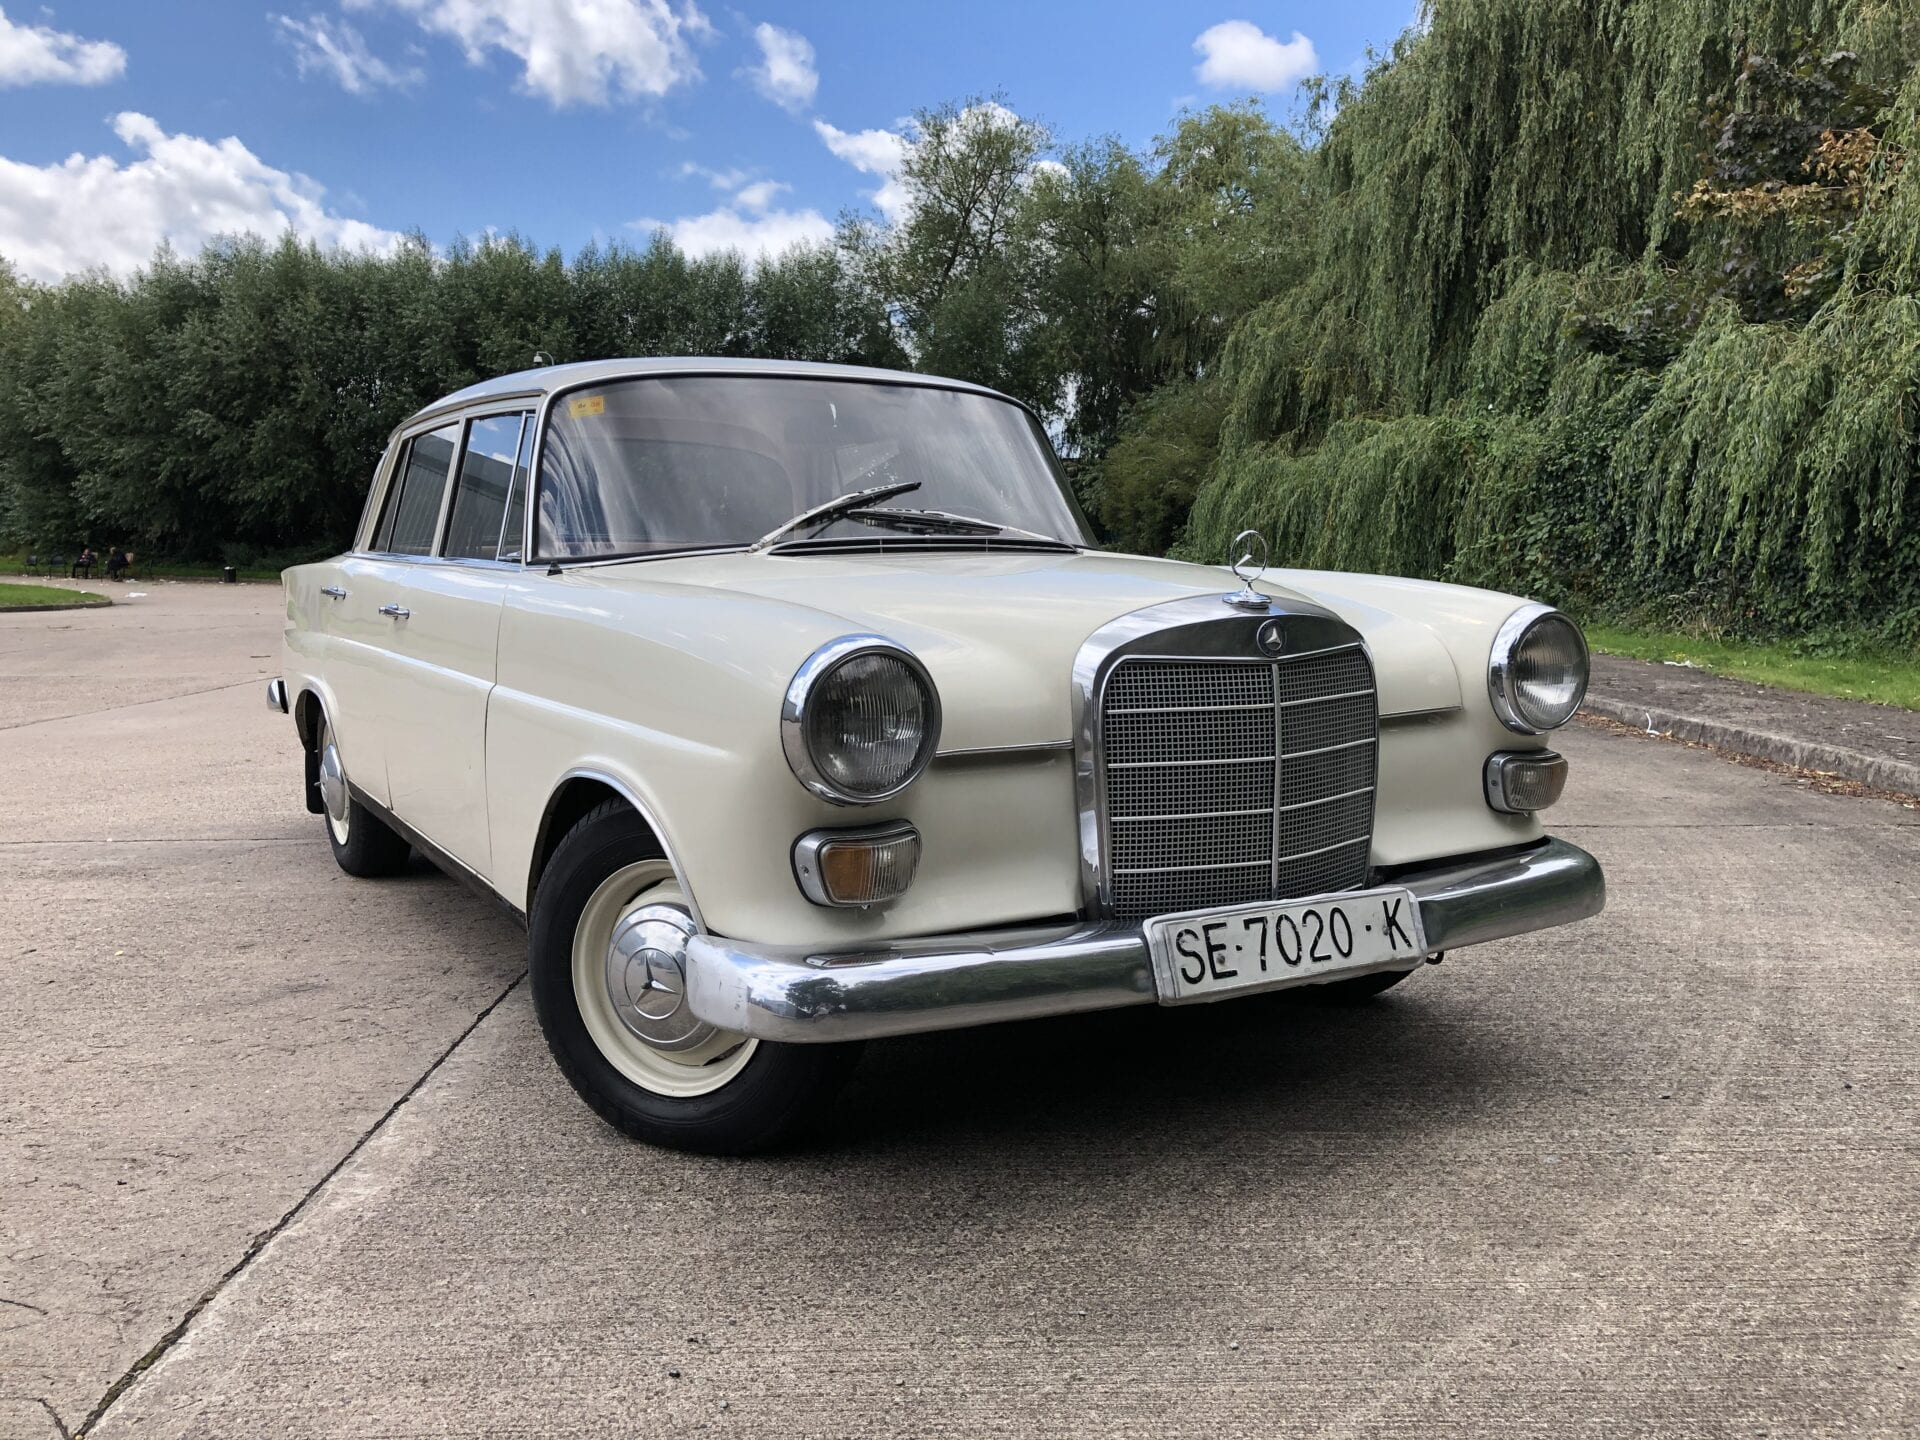 myCar UK - 1967 Mercedes-Benz 200D Fintail W110 LHD